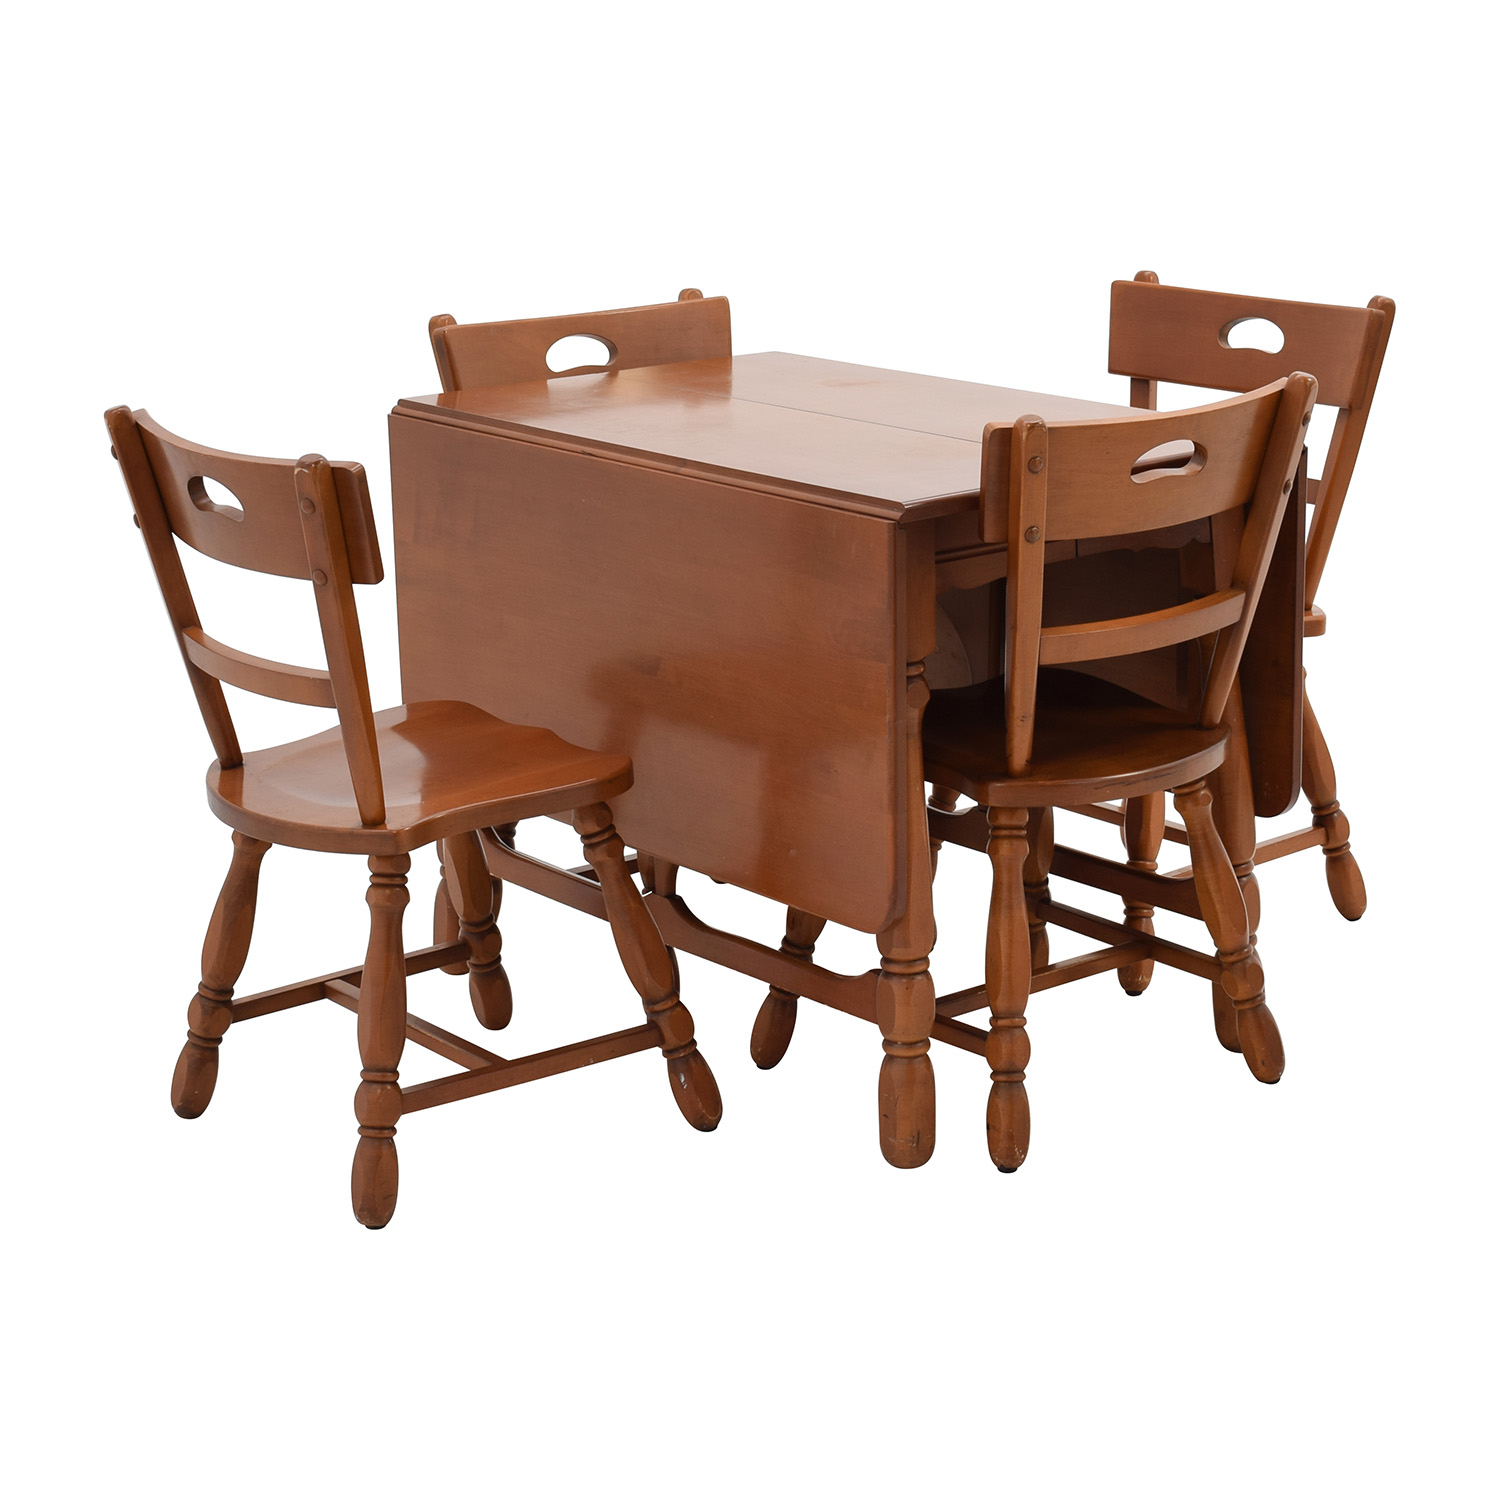 Tables Chairs For Sale: Maple Dining Table With Four Matching Chairs